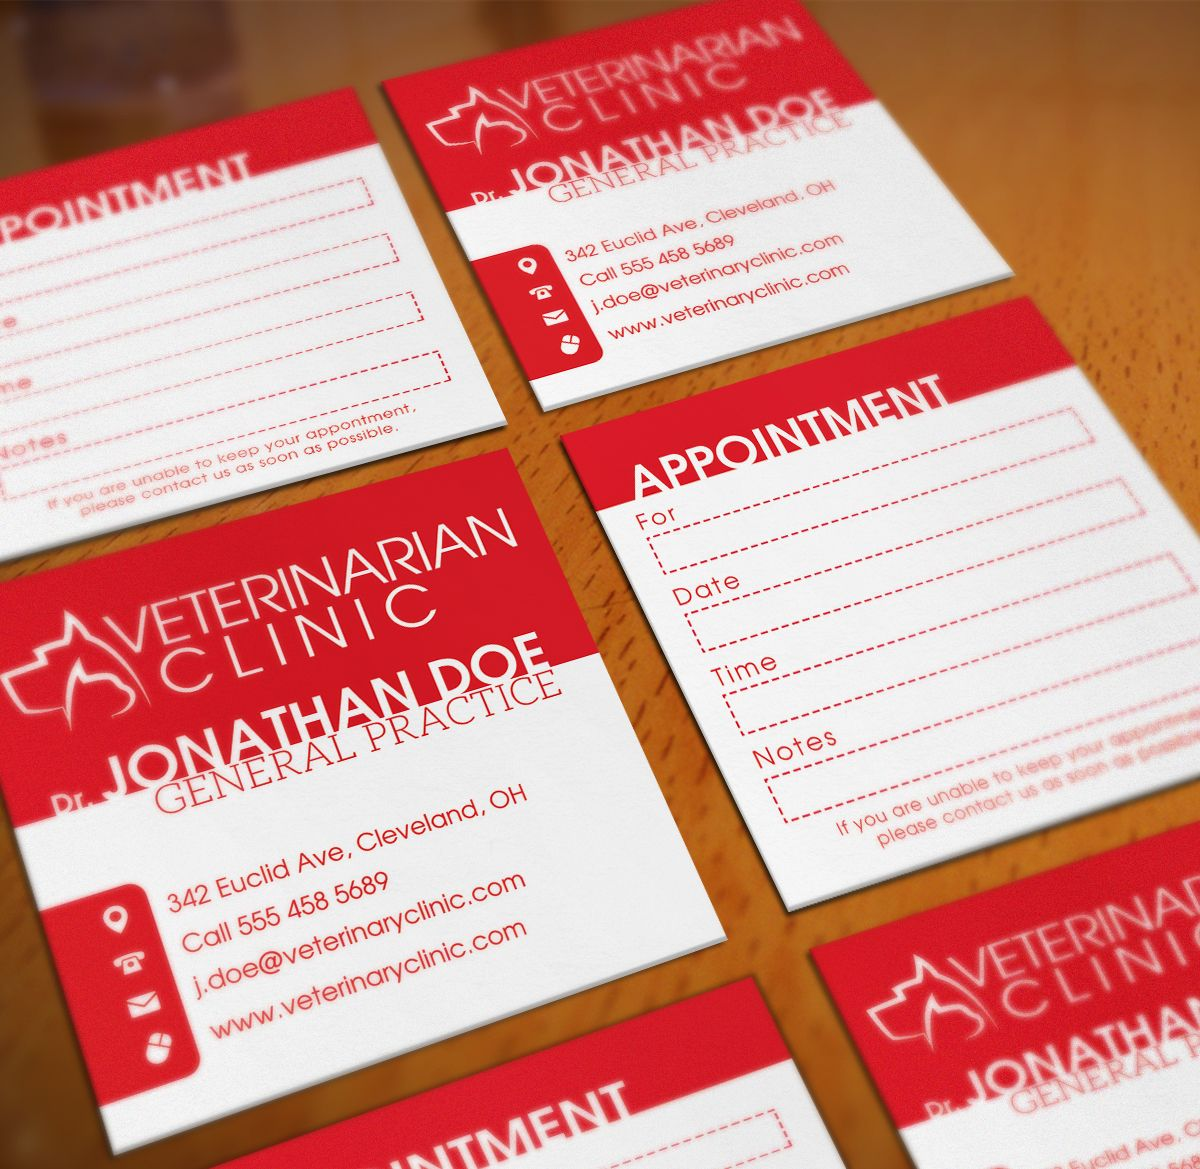 Veterinarian Clinic Square Business Card Screenshot 1